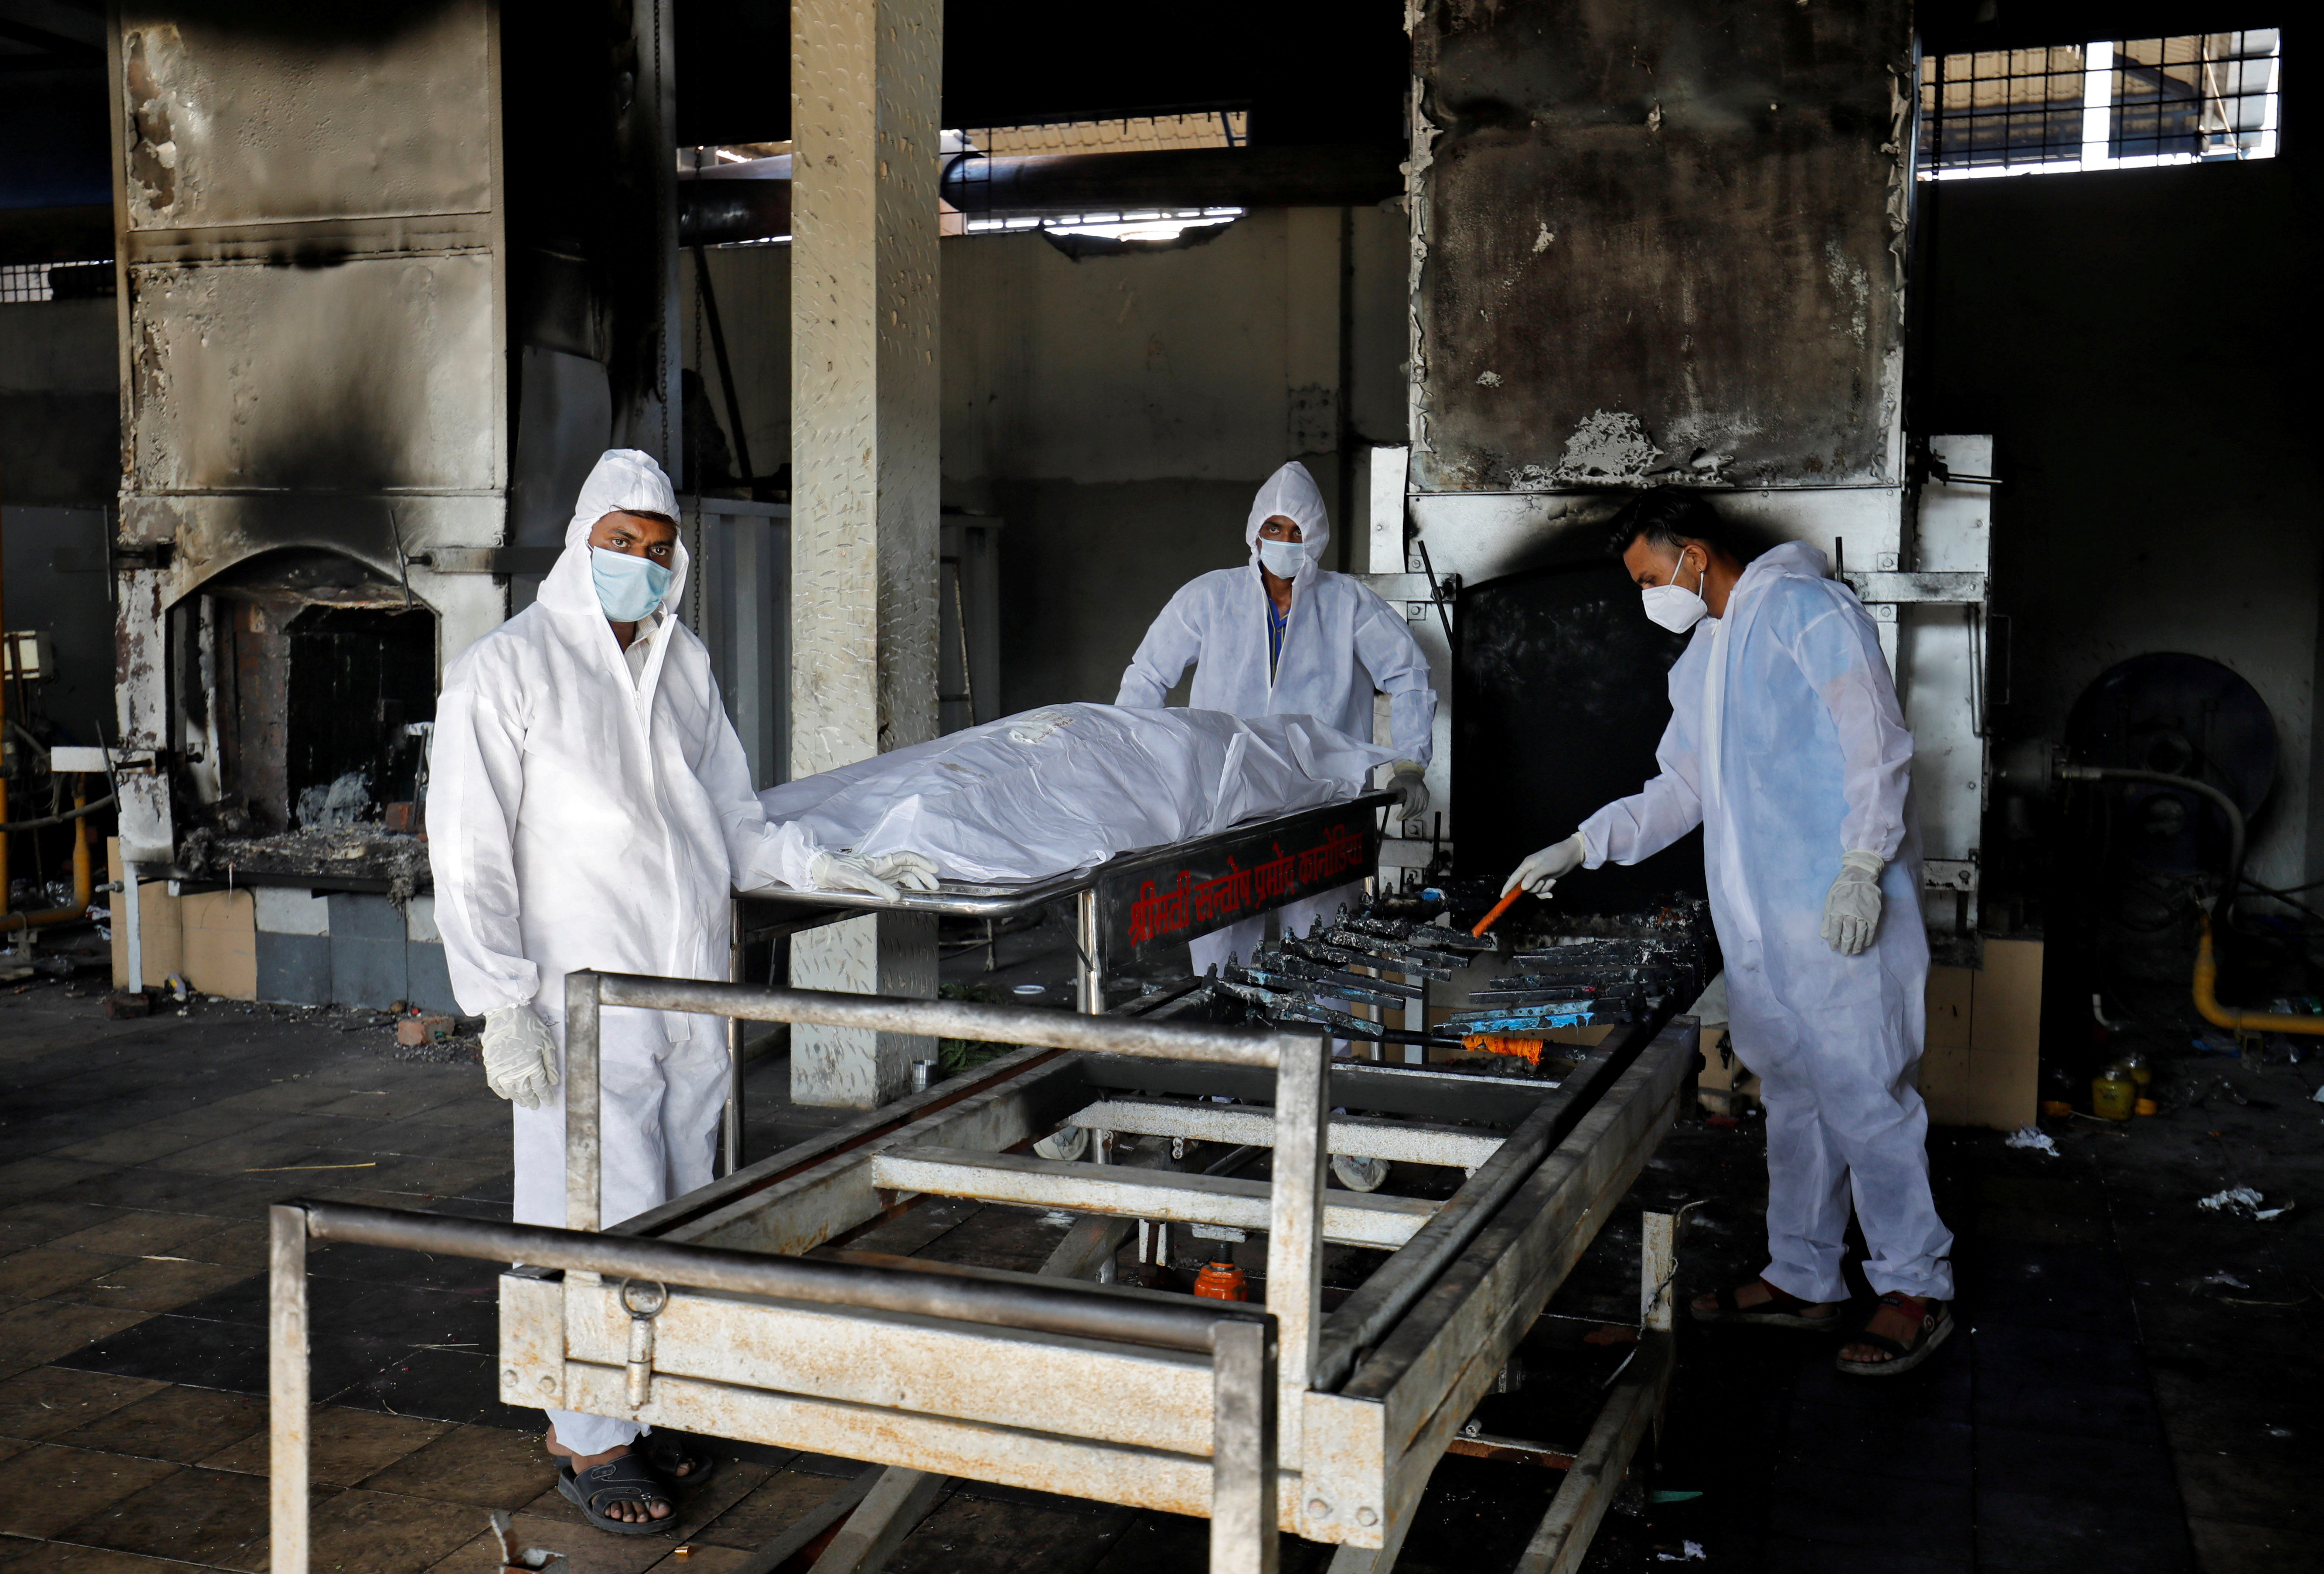 Volunteers from the Khan Trust prepare to cremate the body of a person who died from the coronavirus disease (COVID-19), at the Kurukshetra Crematorium in Surat, India, May 11, 2021.  REUTERS/Amit Dave/File Photo